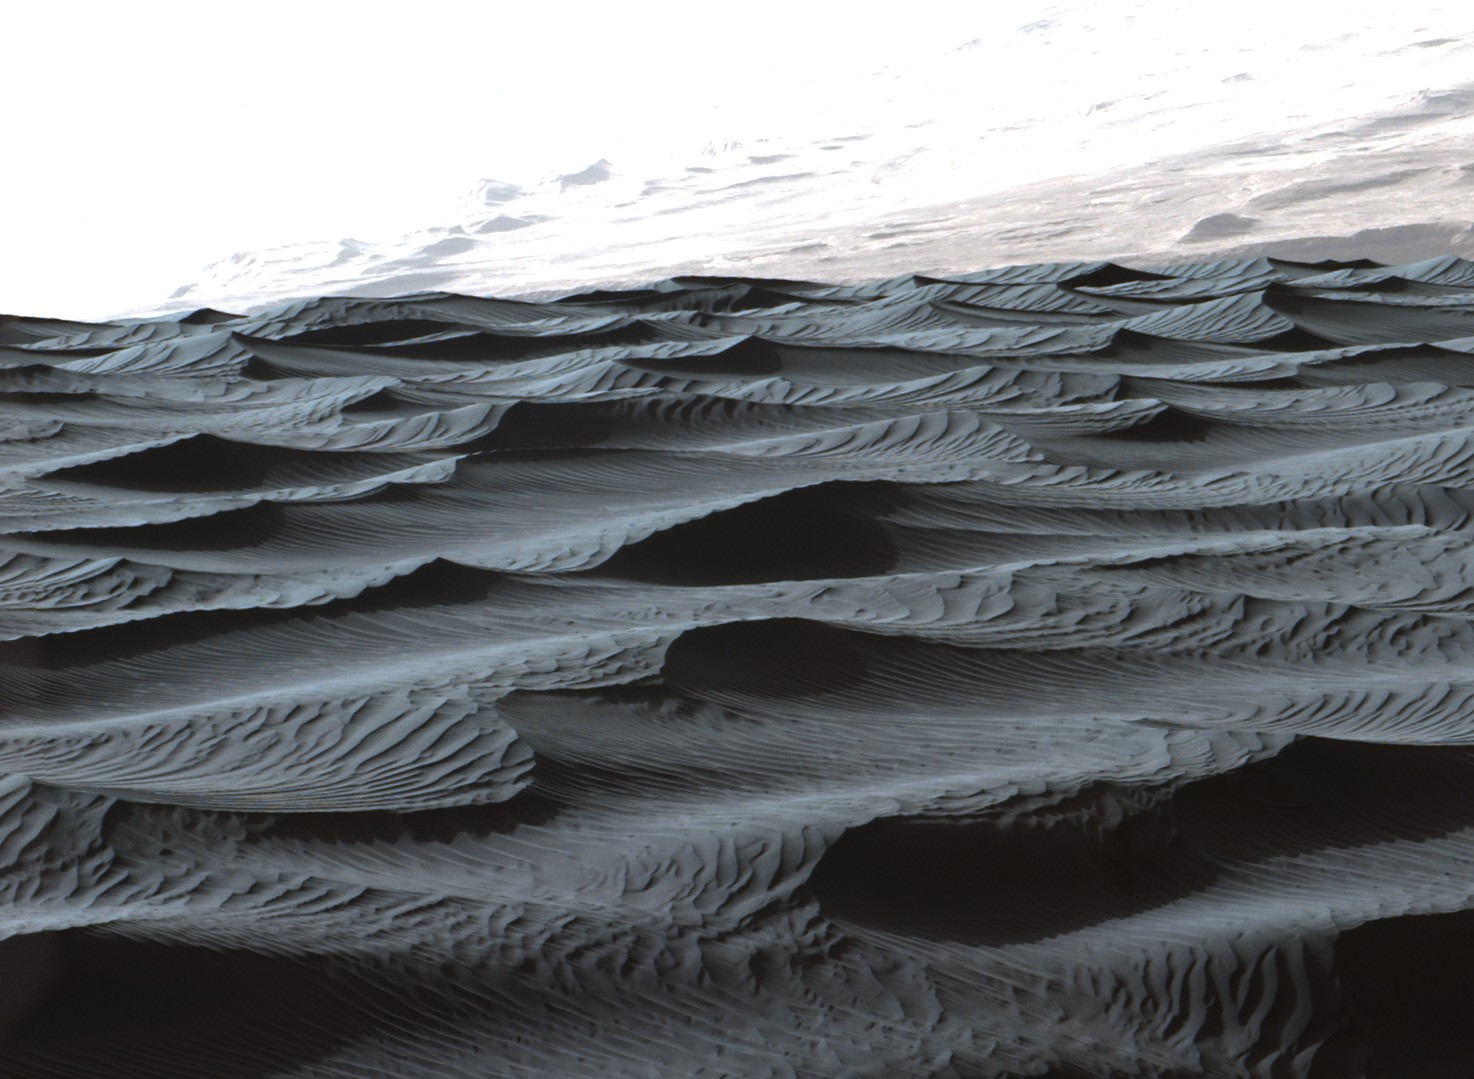 Sand ripples tell tales about Mars' past and present